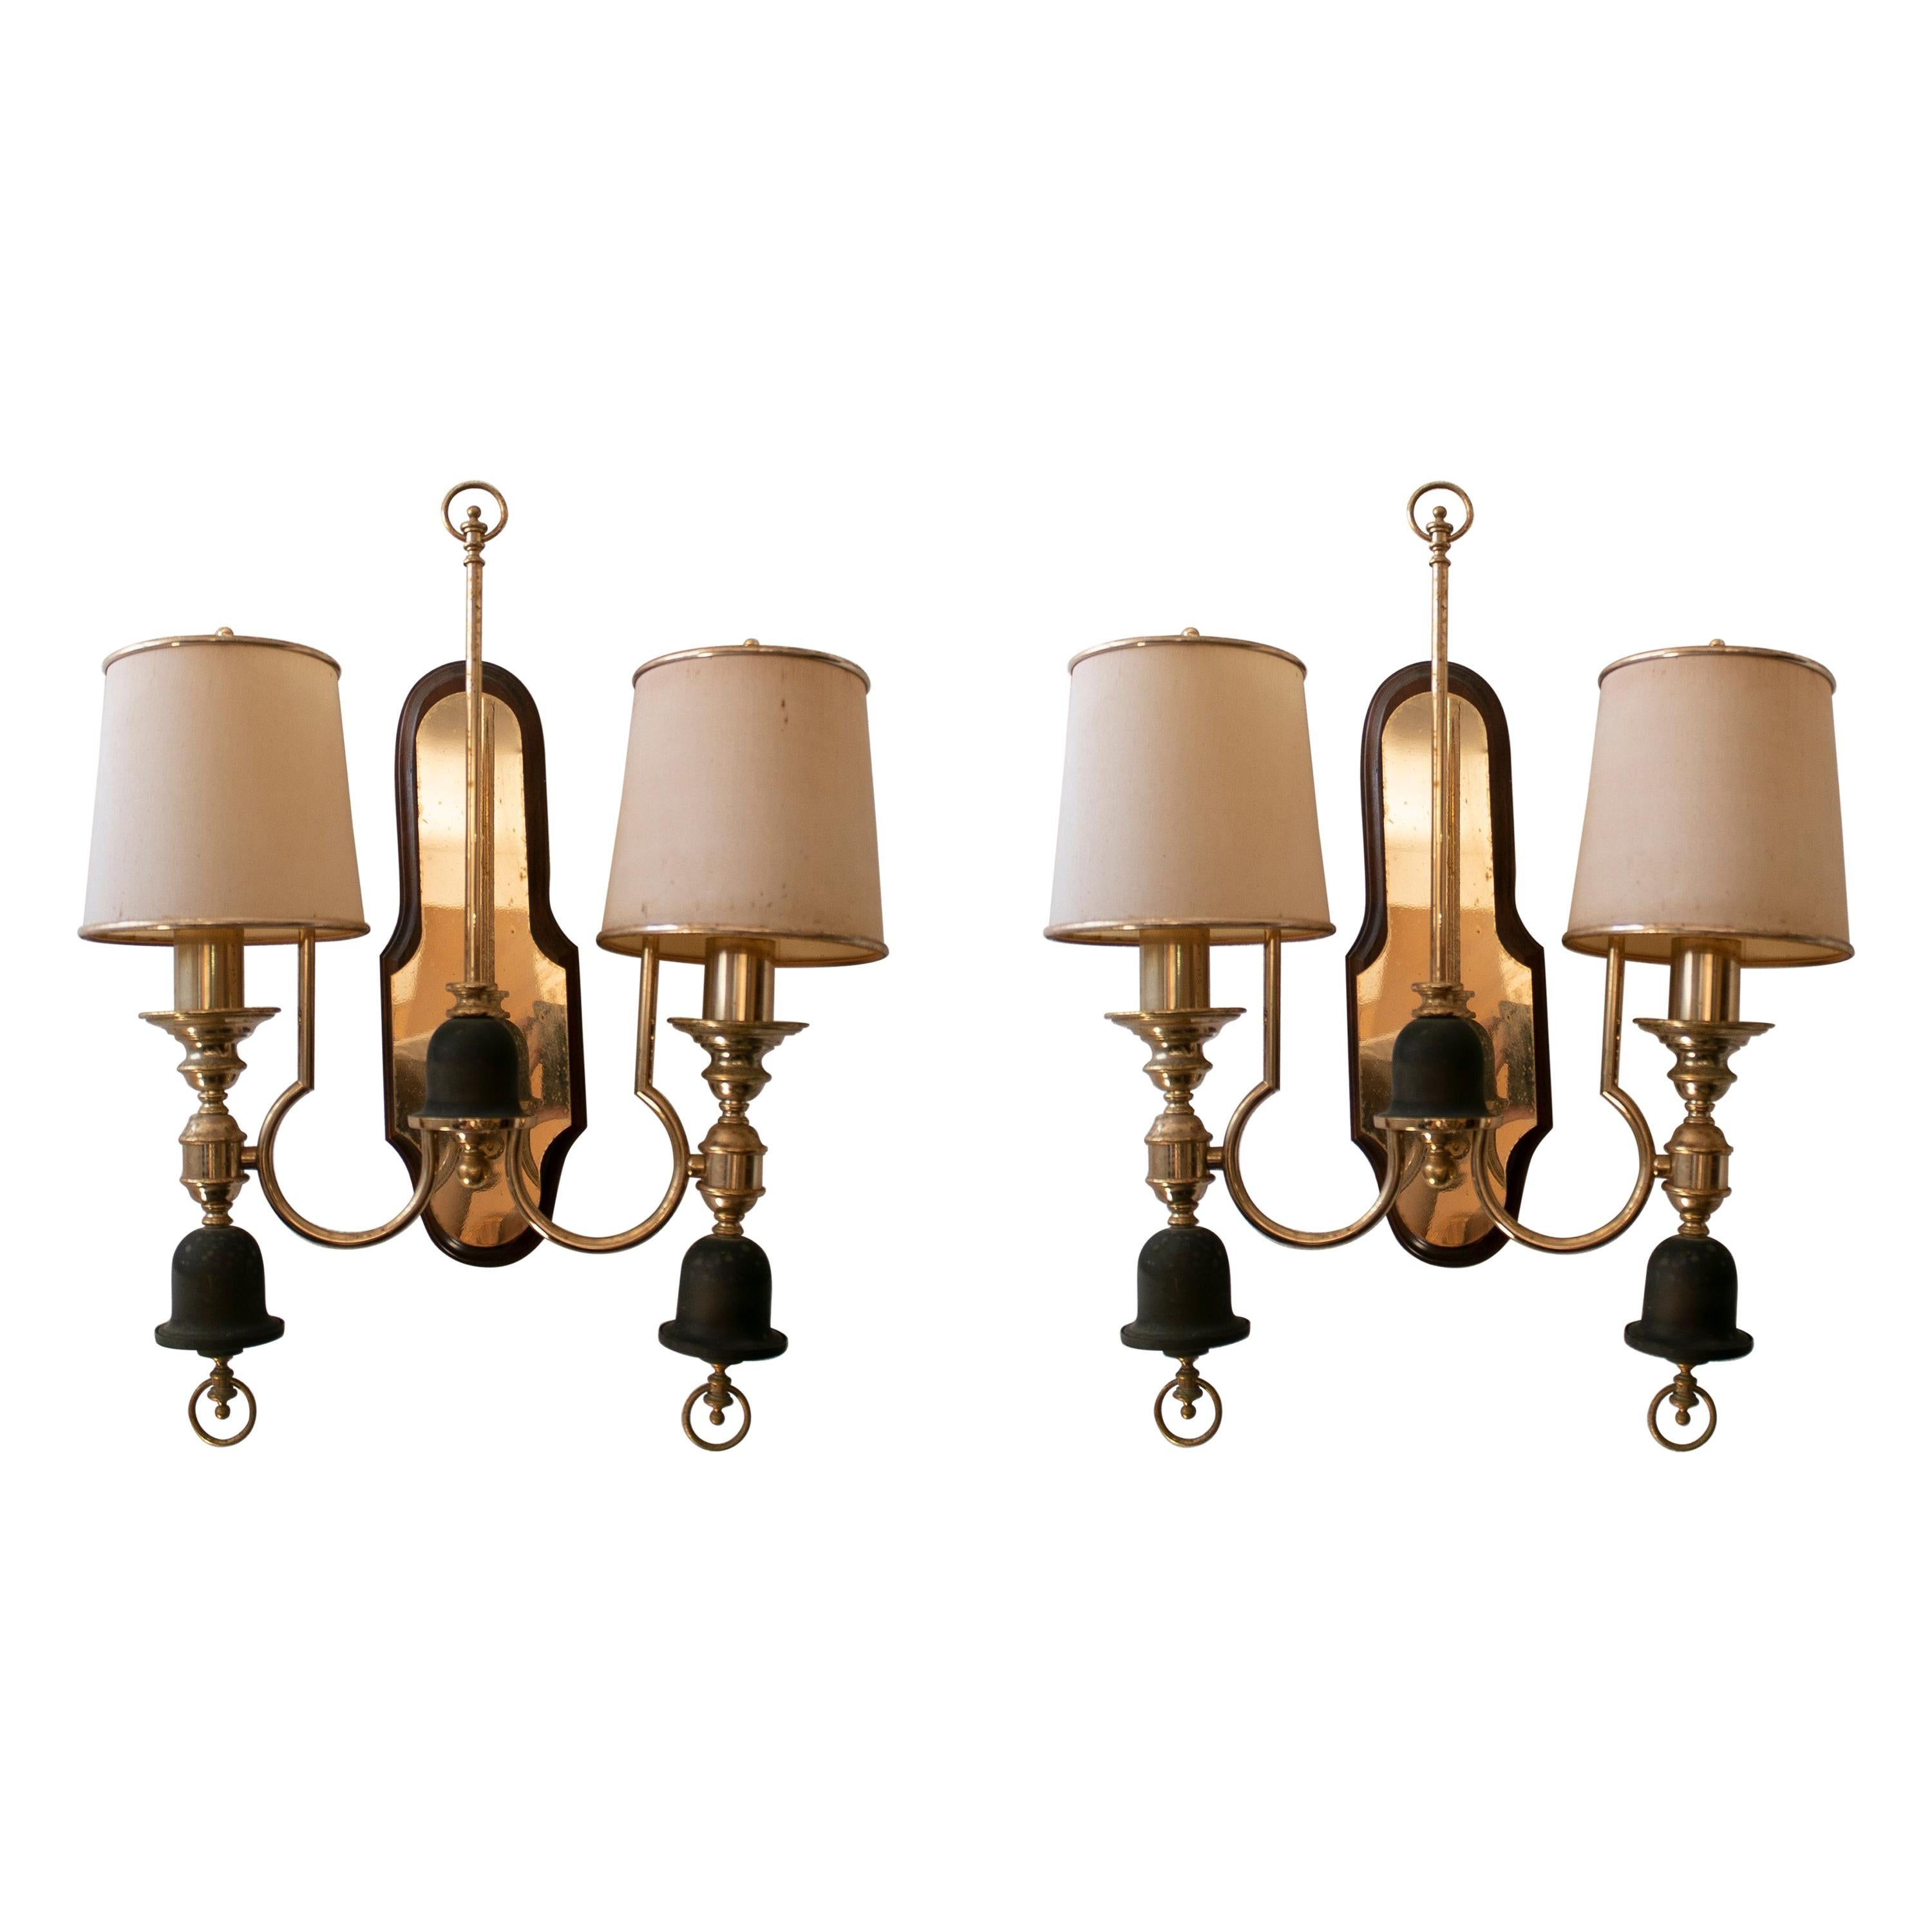 Pair of 1970s Spanish Gilt Bronze 2-Arm Wall Sconces w/ Shades